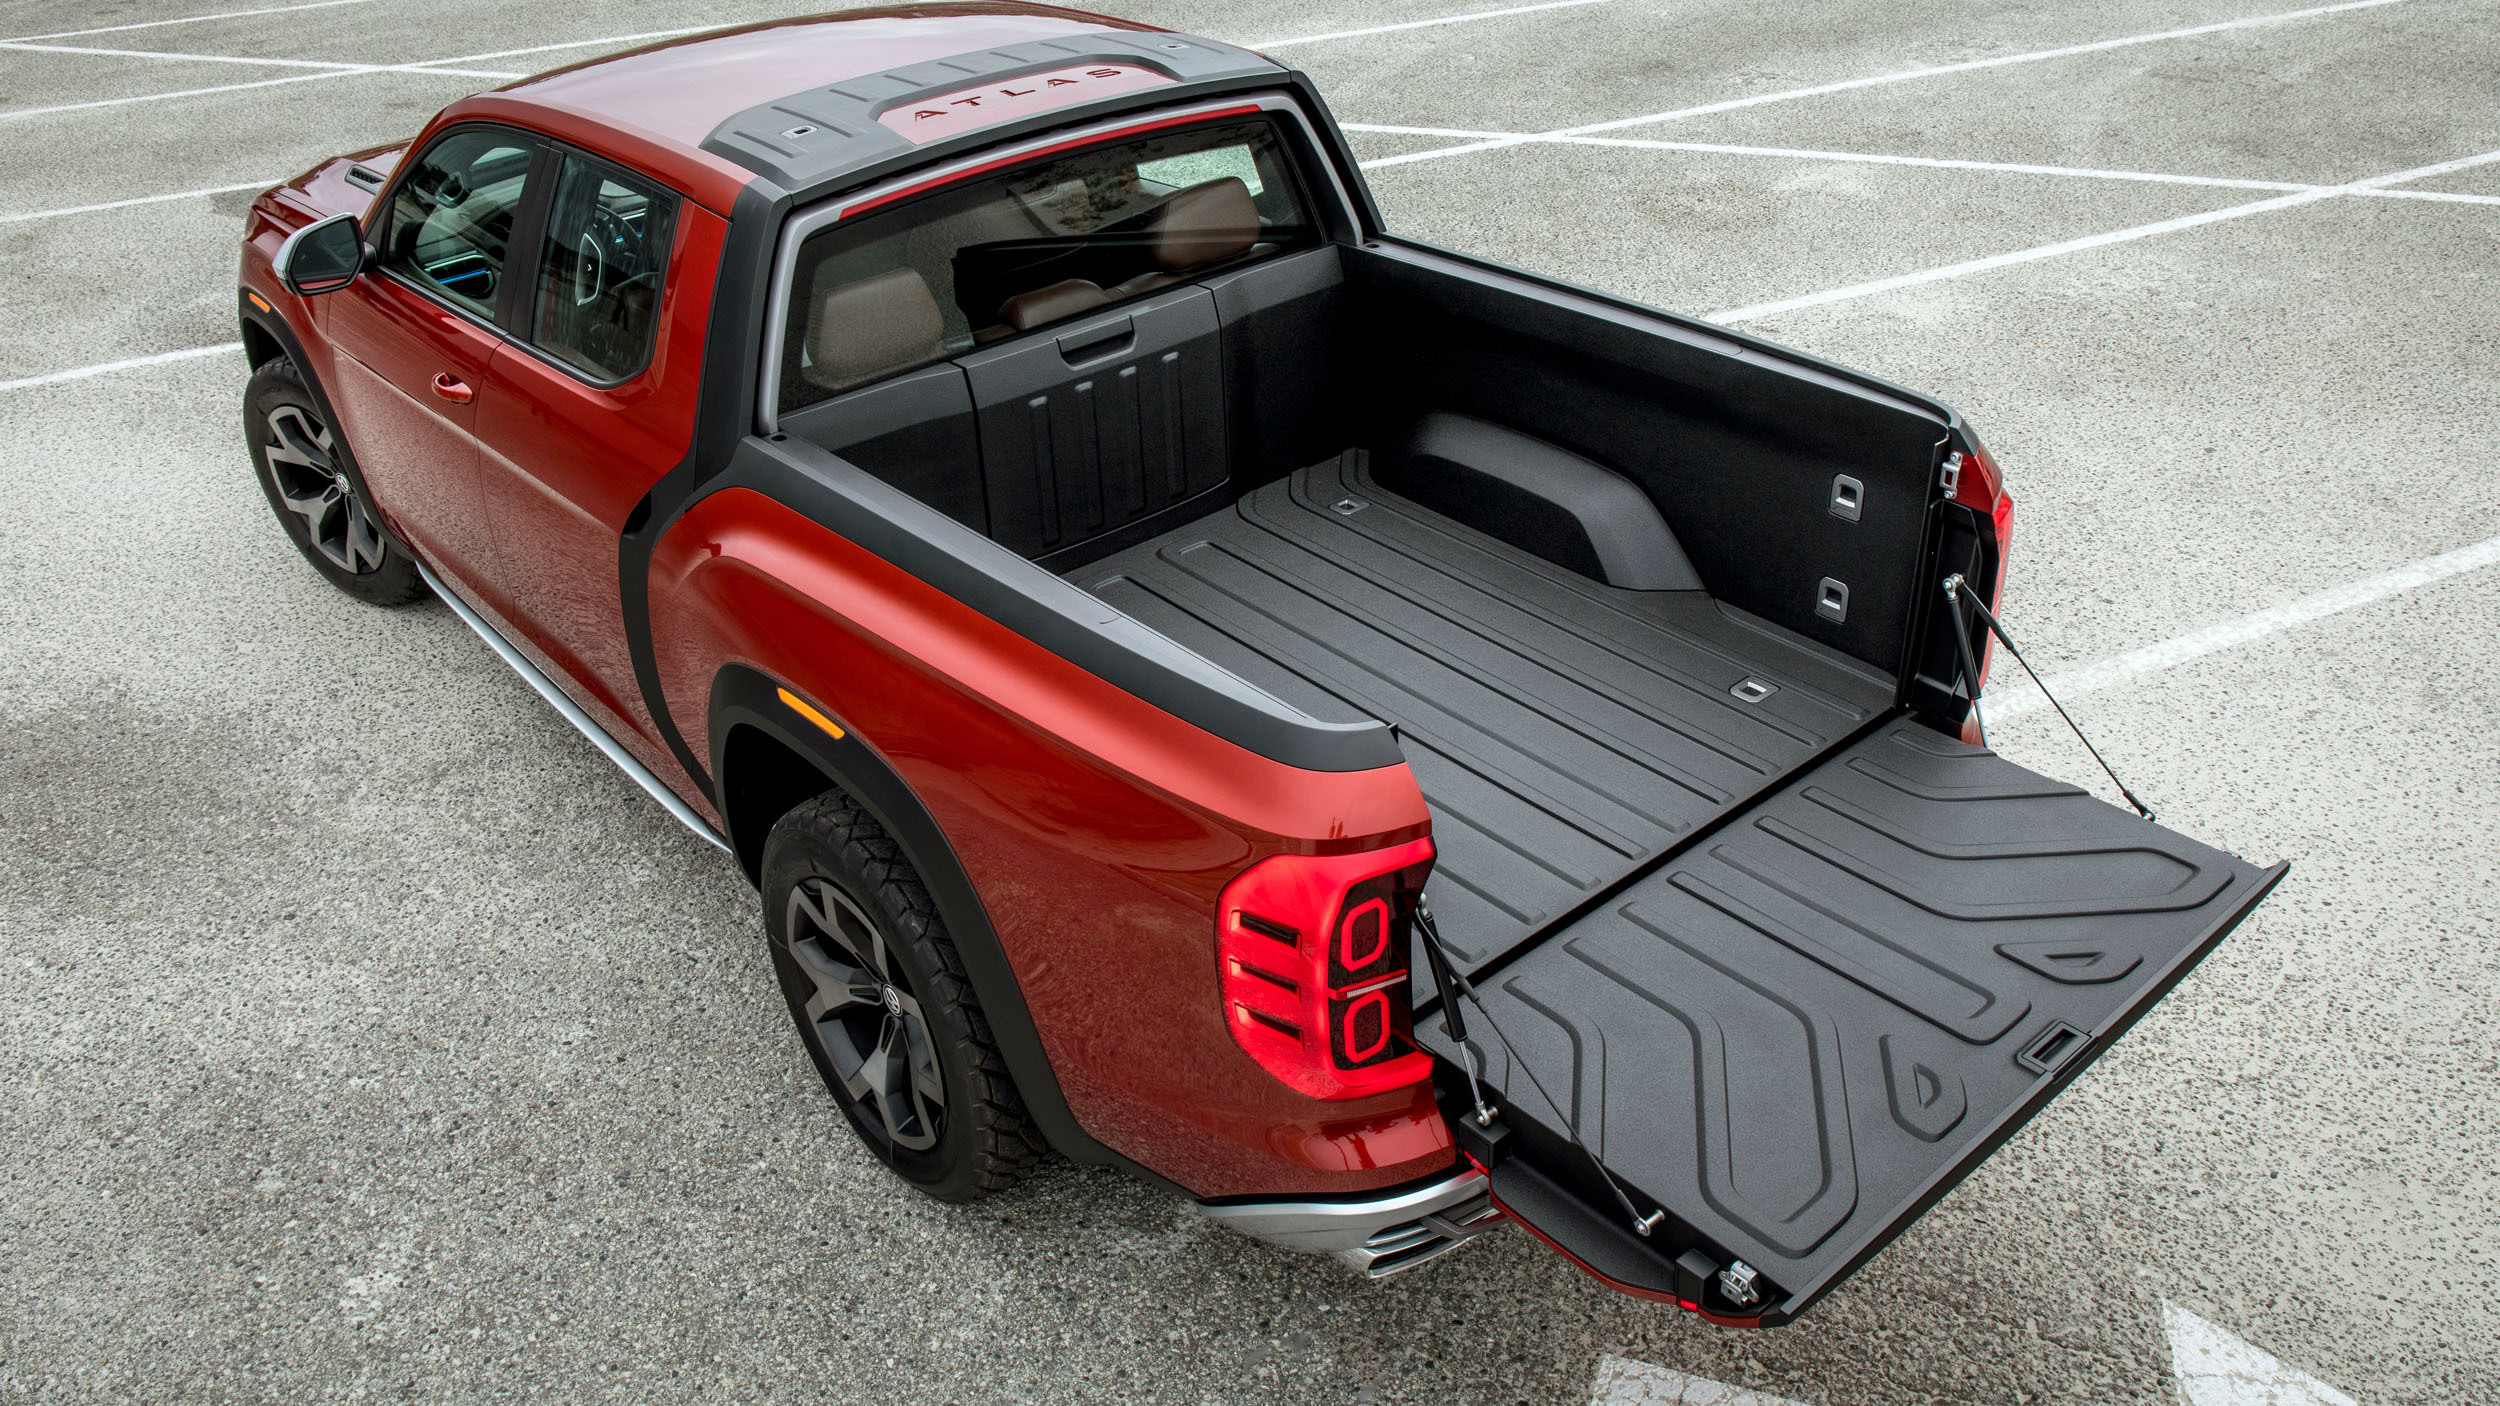 VW Tanoak concept truck road test review | Car News, Reviews, & Pricing for New & Used Cars.